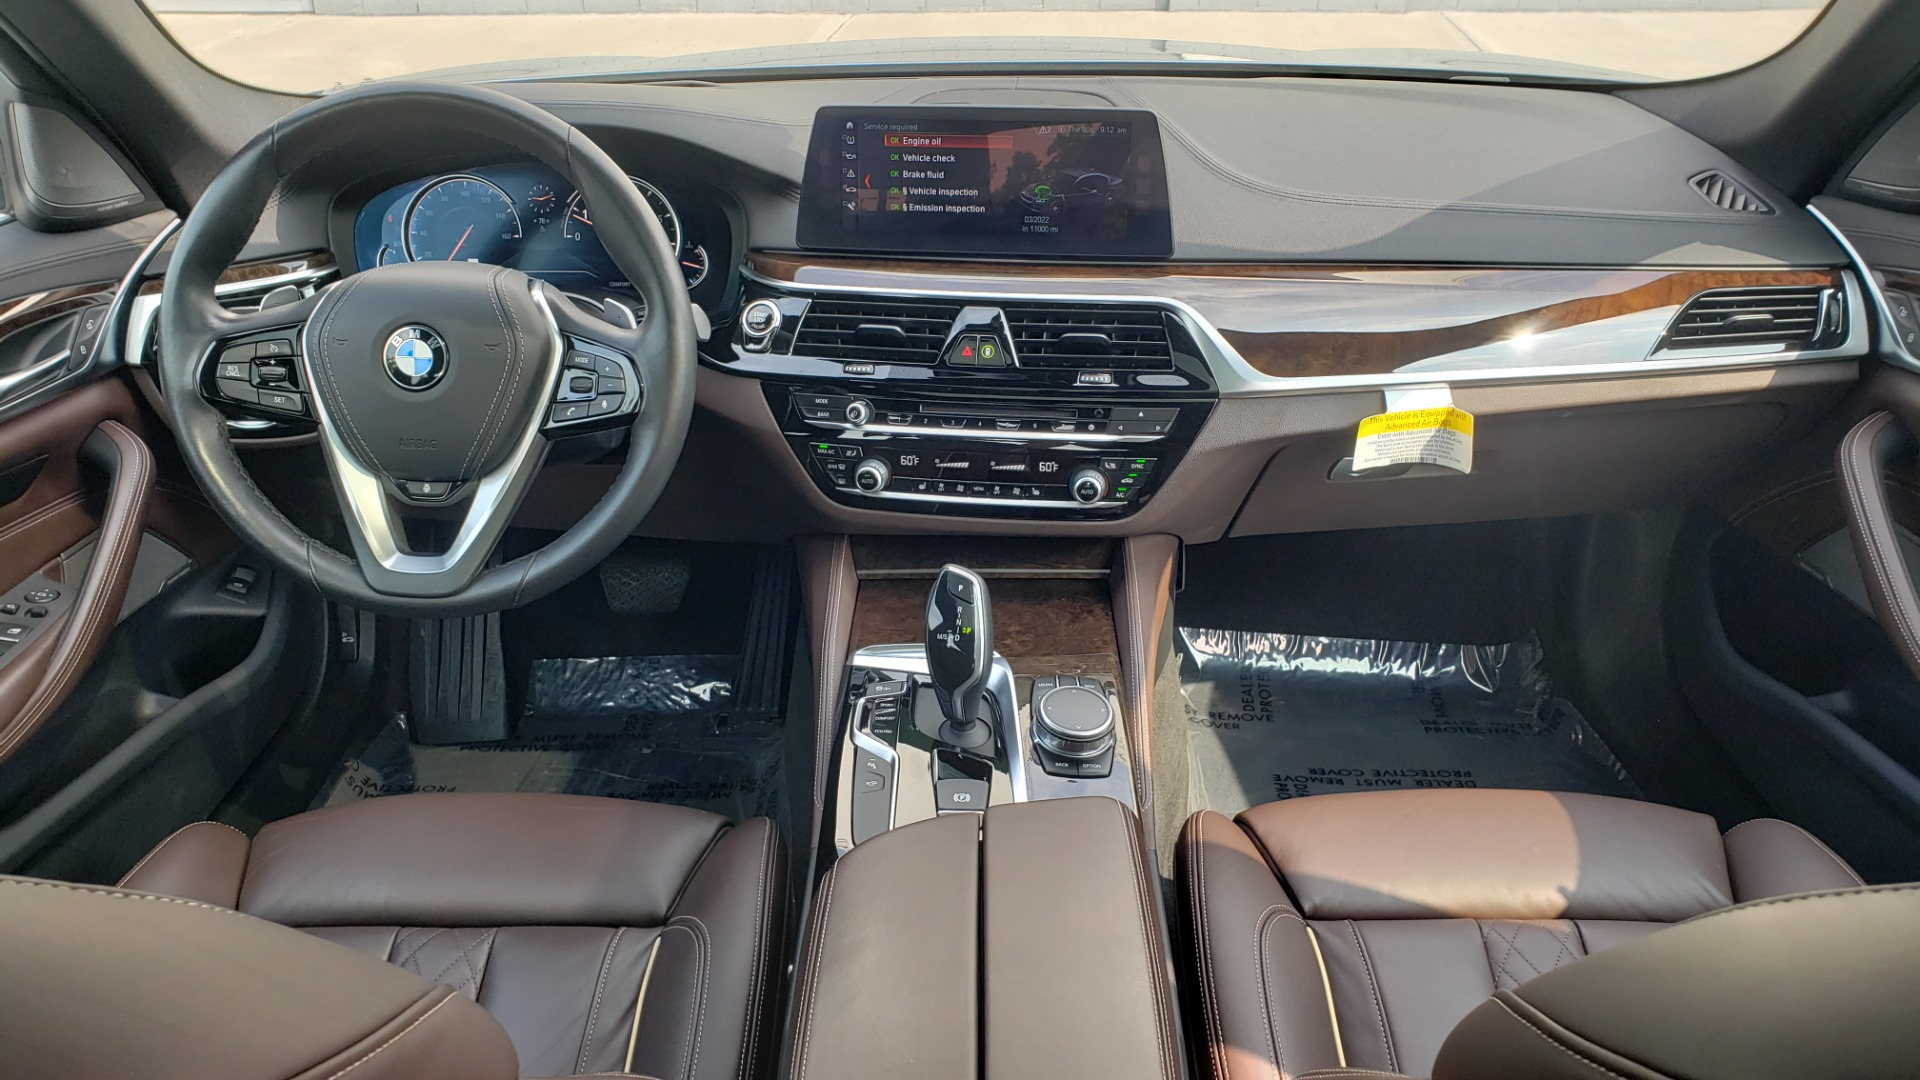 Used 2018 BMW 5 SERIES 540I XDRIVE PREMIUM / EXECUTIVE / LUXURY / H/K SND / REMOTE CONTROL PARKING for sale $40,995 at Formula Imports in Charlotte NC 28227 74